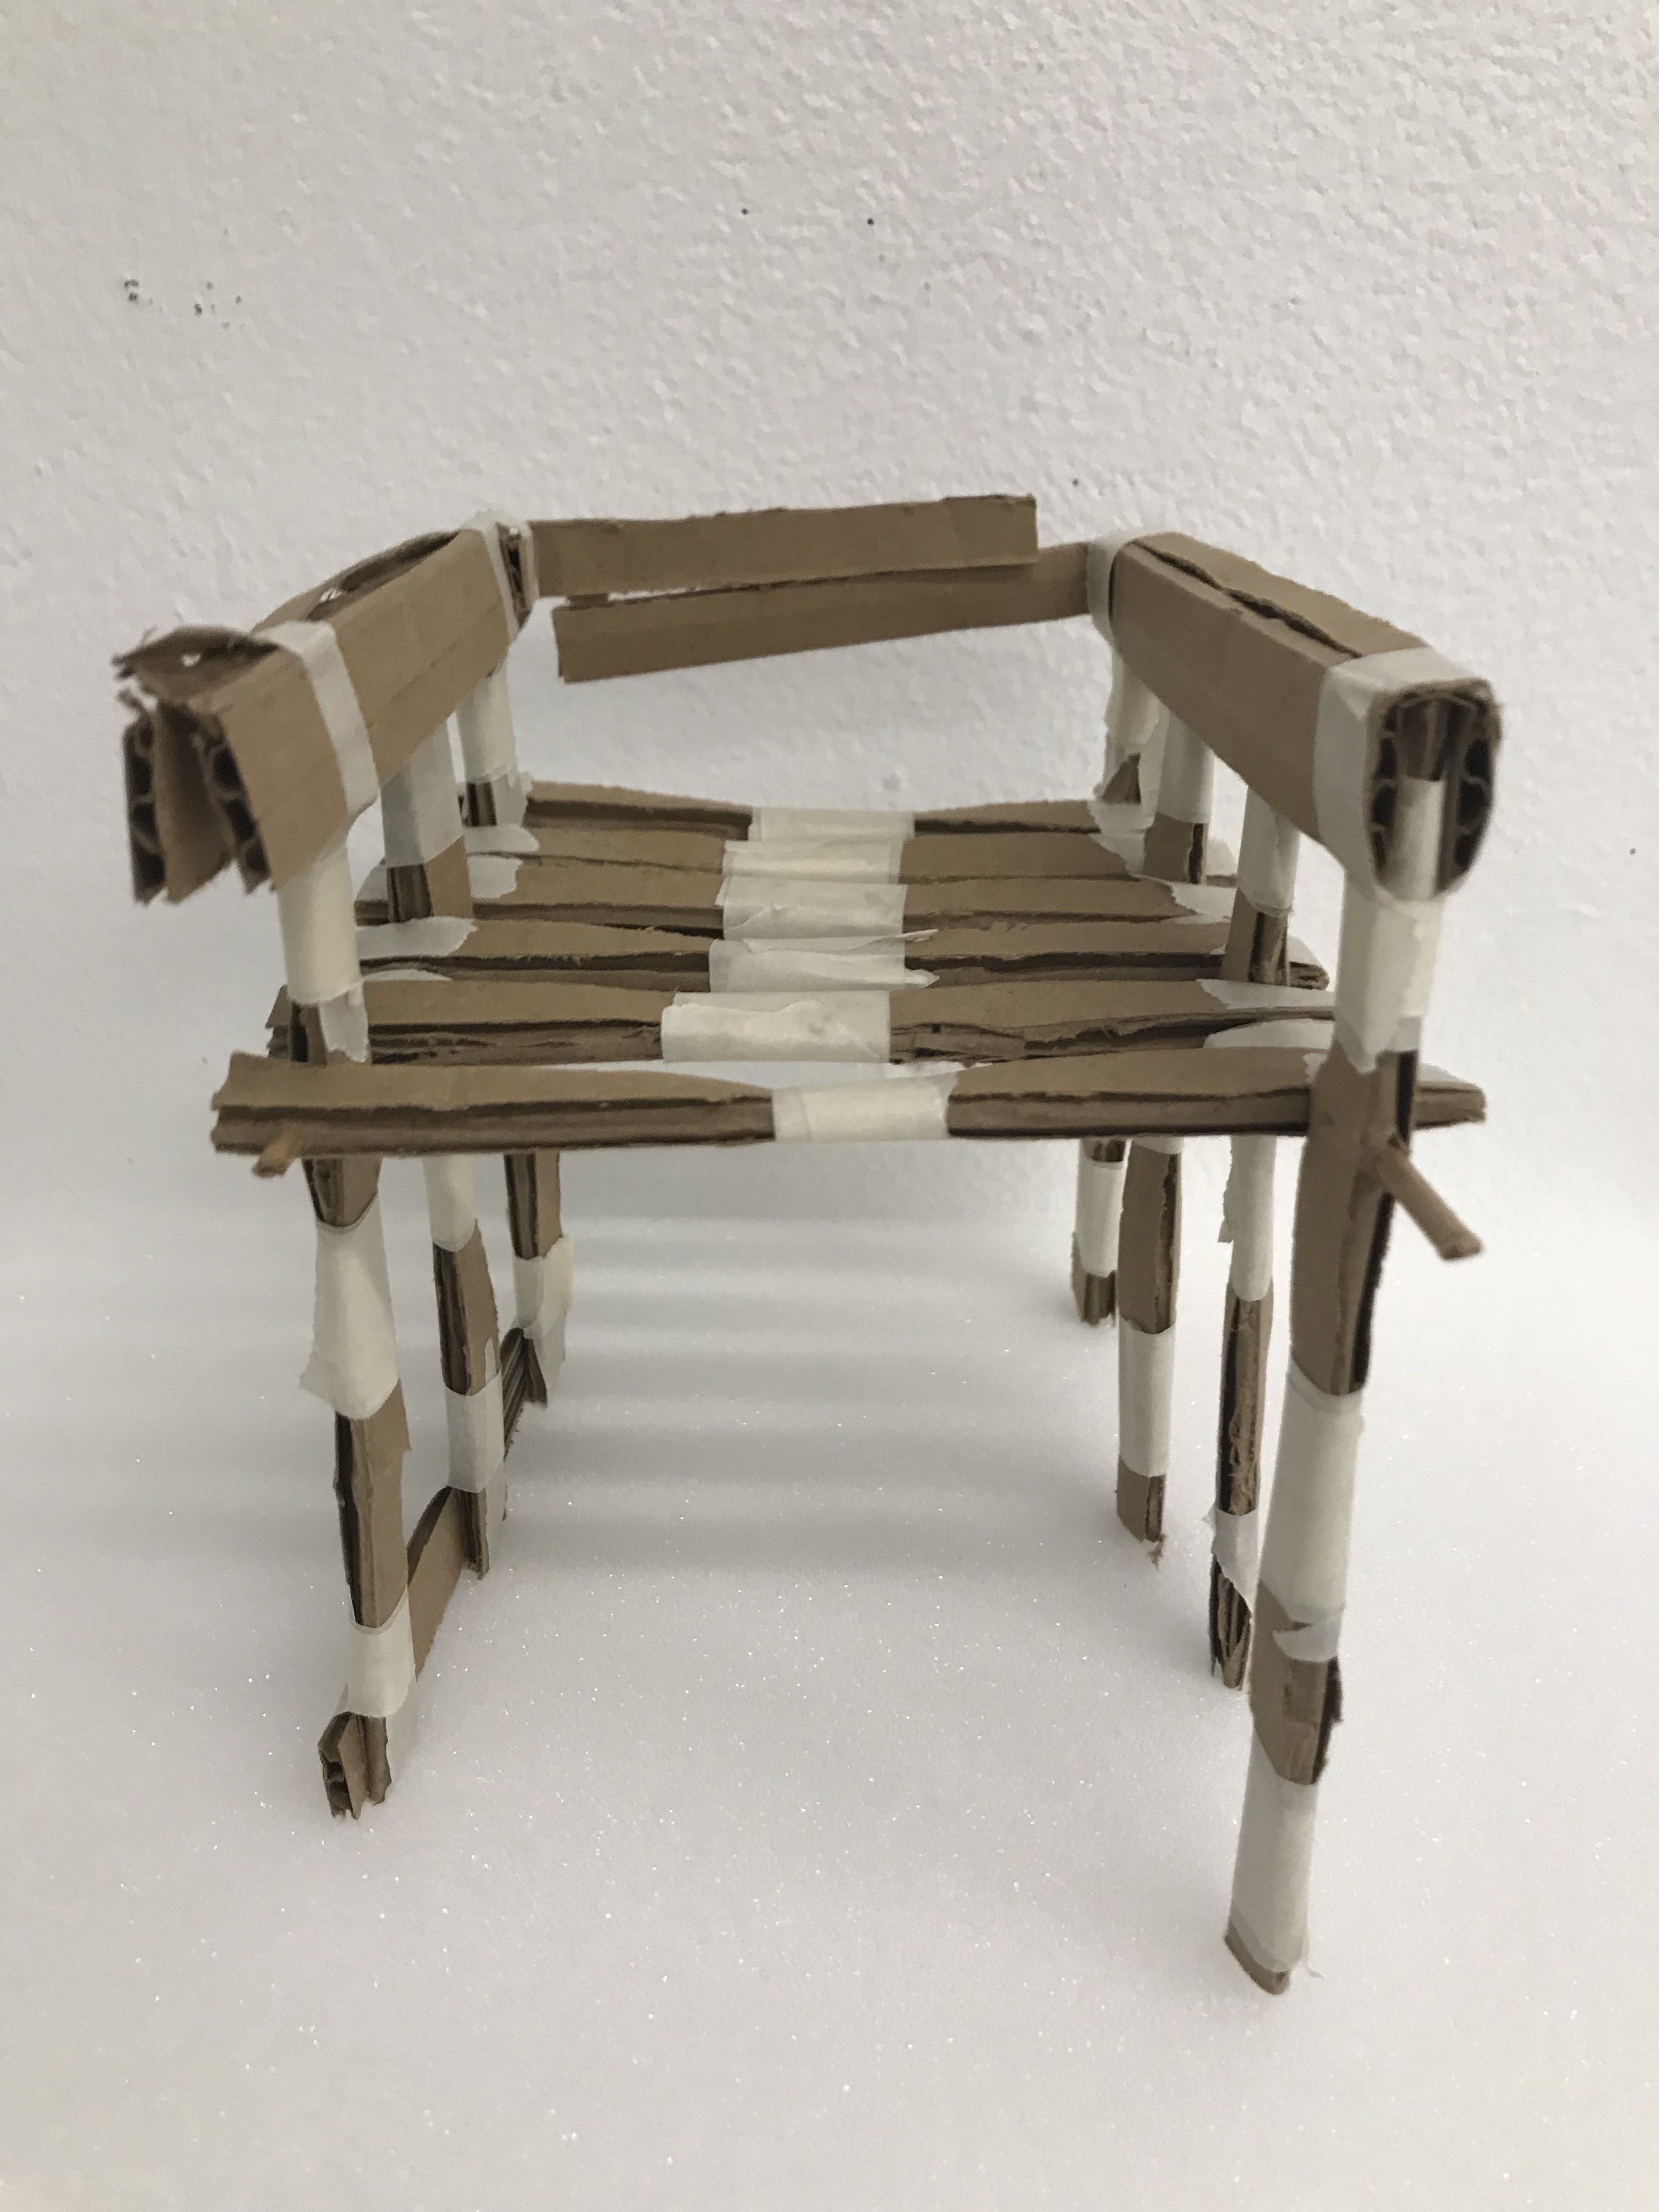 Space & Materiality – Collapsable Chair Project (Process)